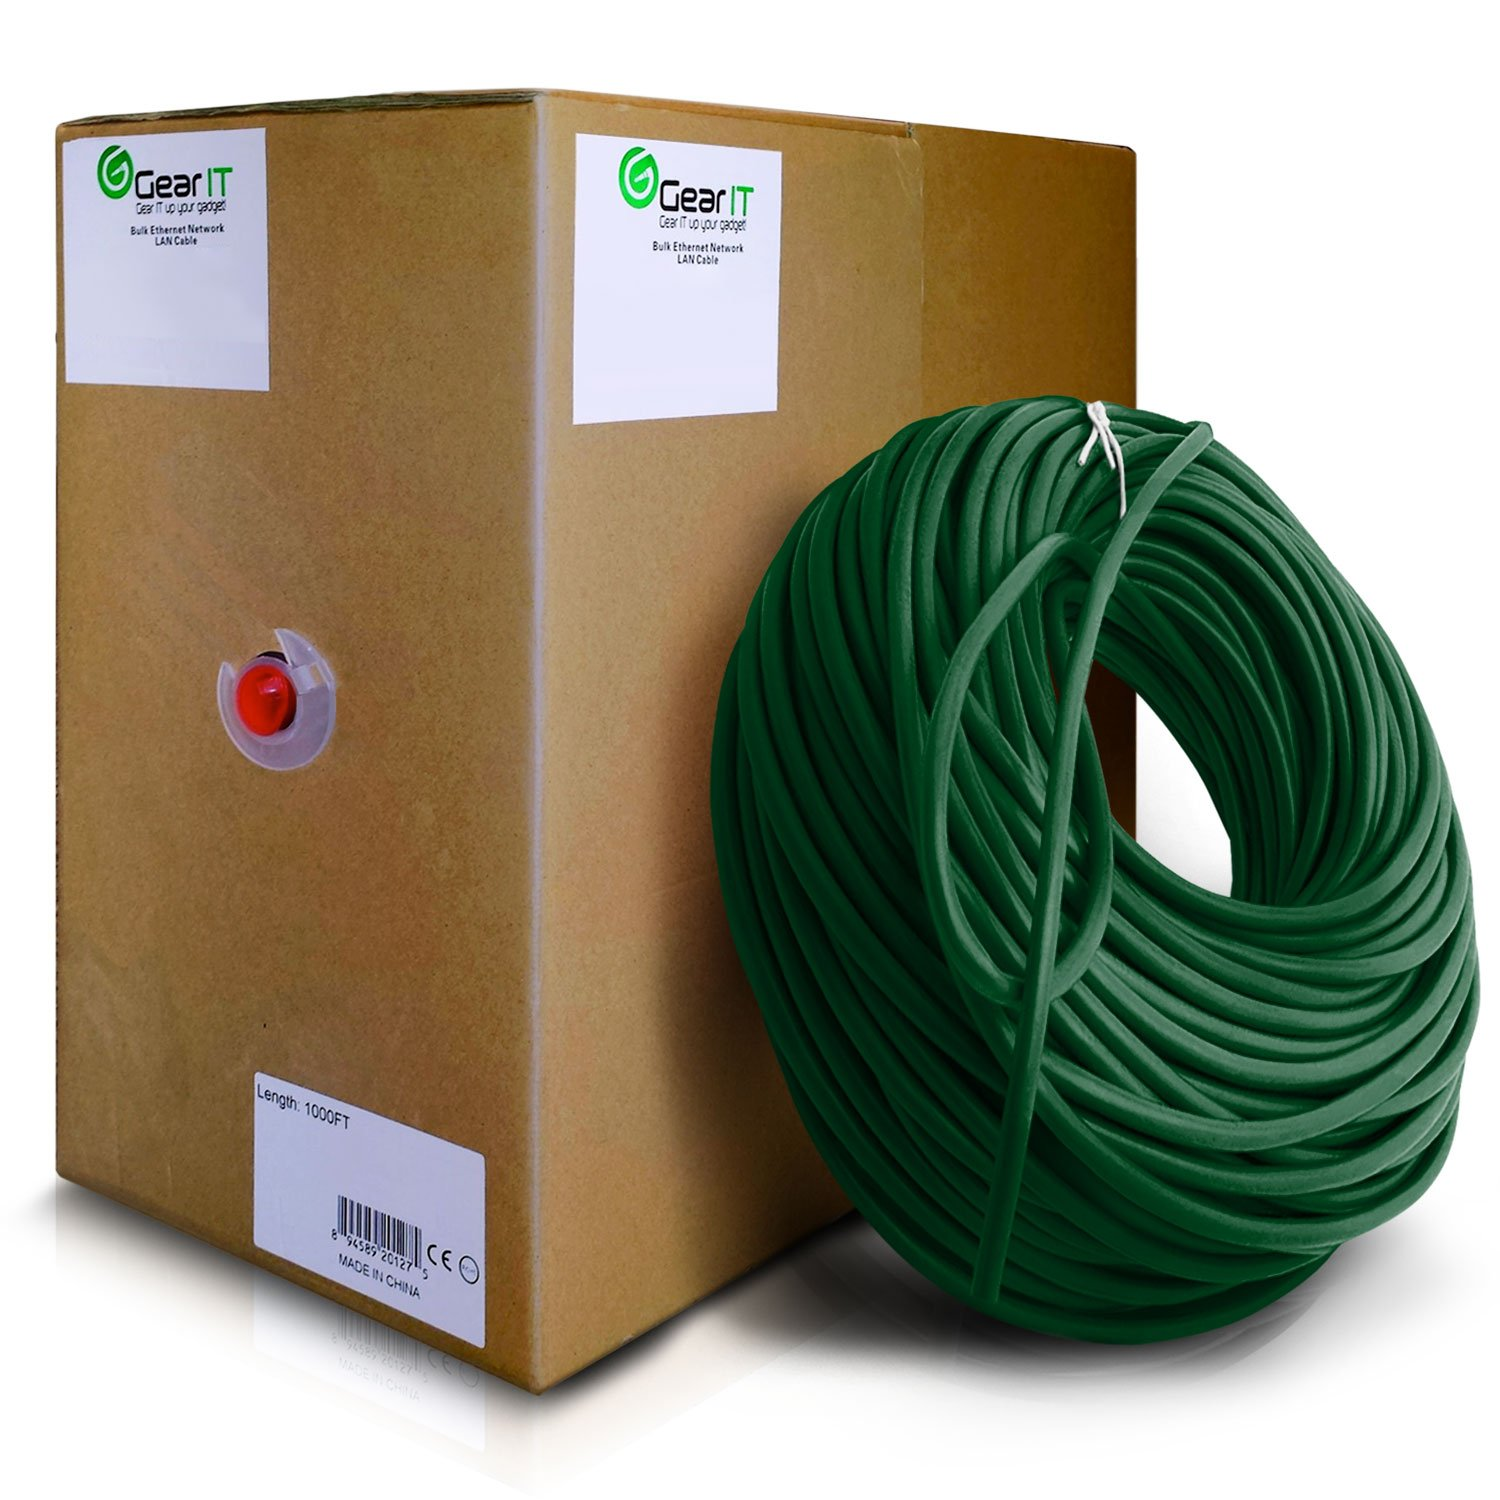 GearIT Cat5e Ethernet Cable Bulk 1000 Feet - Cat 5e 350Mhz 24AWG Full Copper Wire UTP Pull Box - In-Wall Rated (CM) Stranded Cat5e, Green